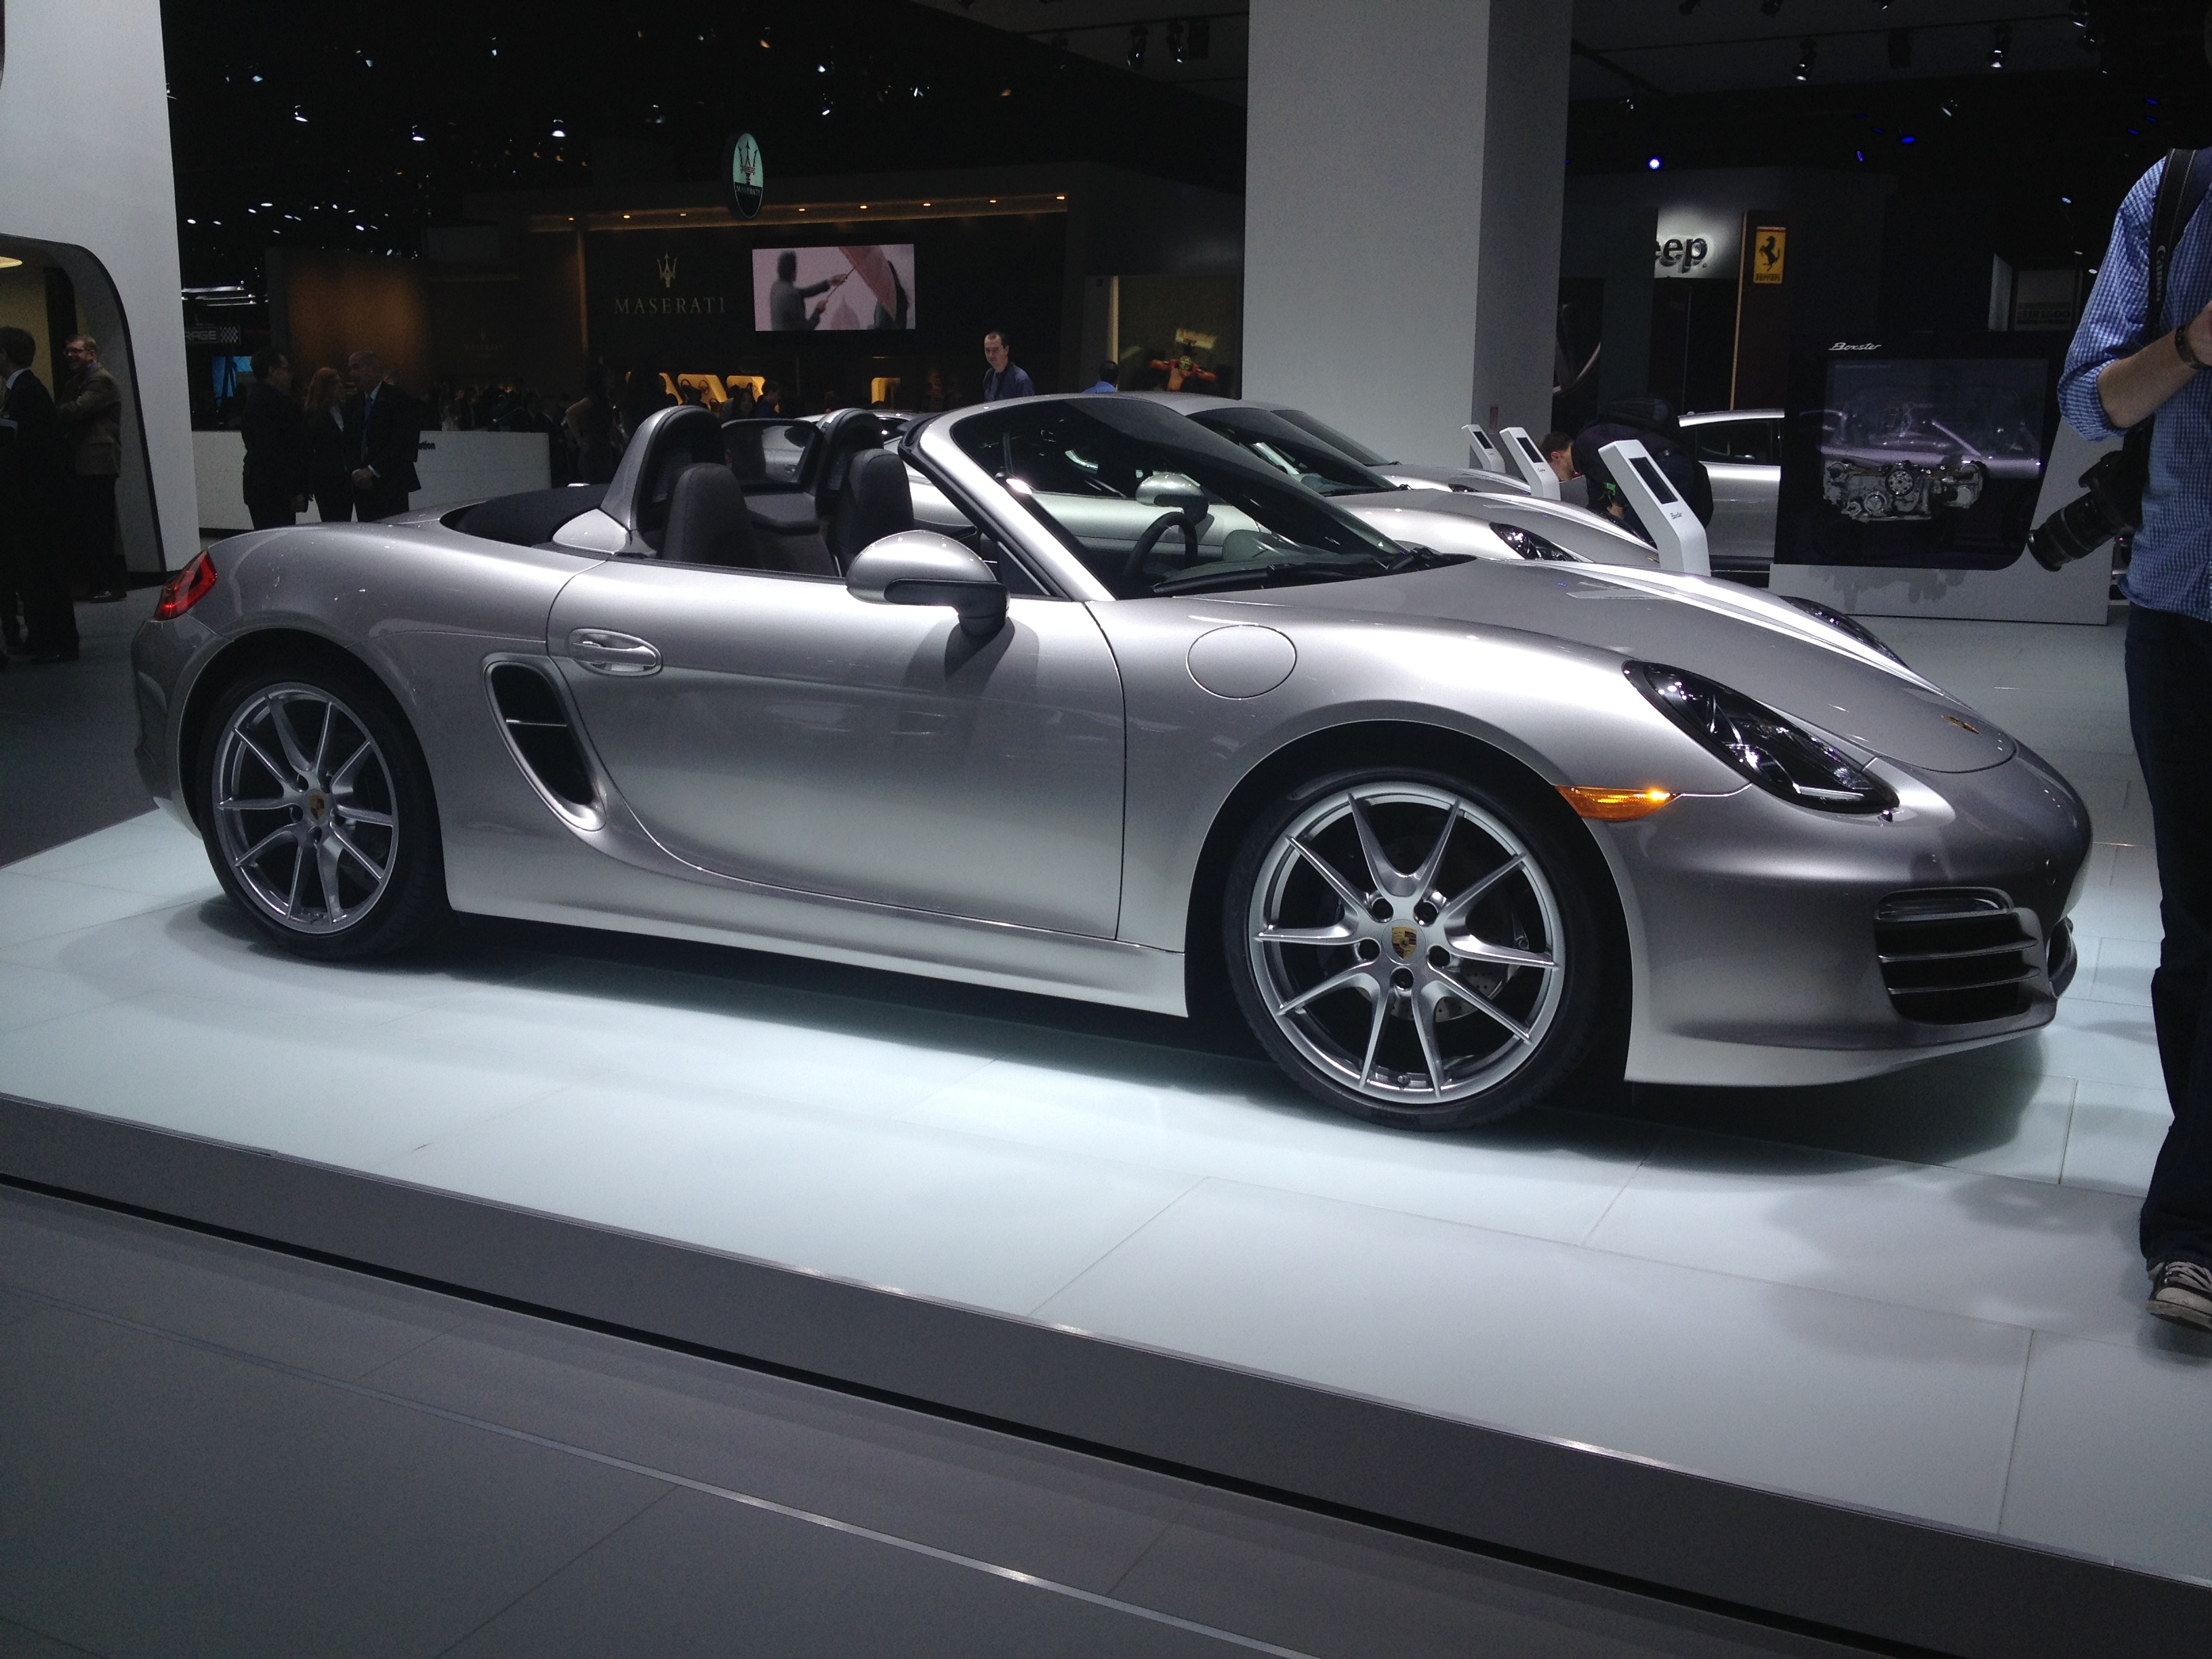 2013-porsche-boxster-at-naias-2013-by-sarahlarson